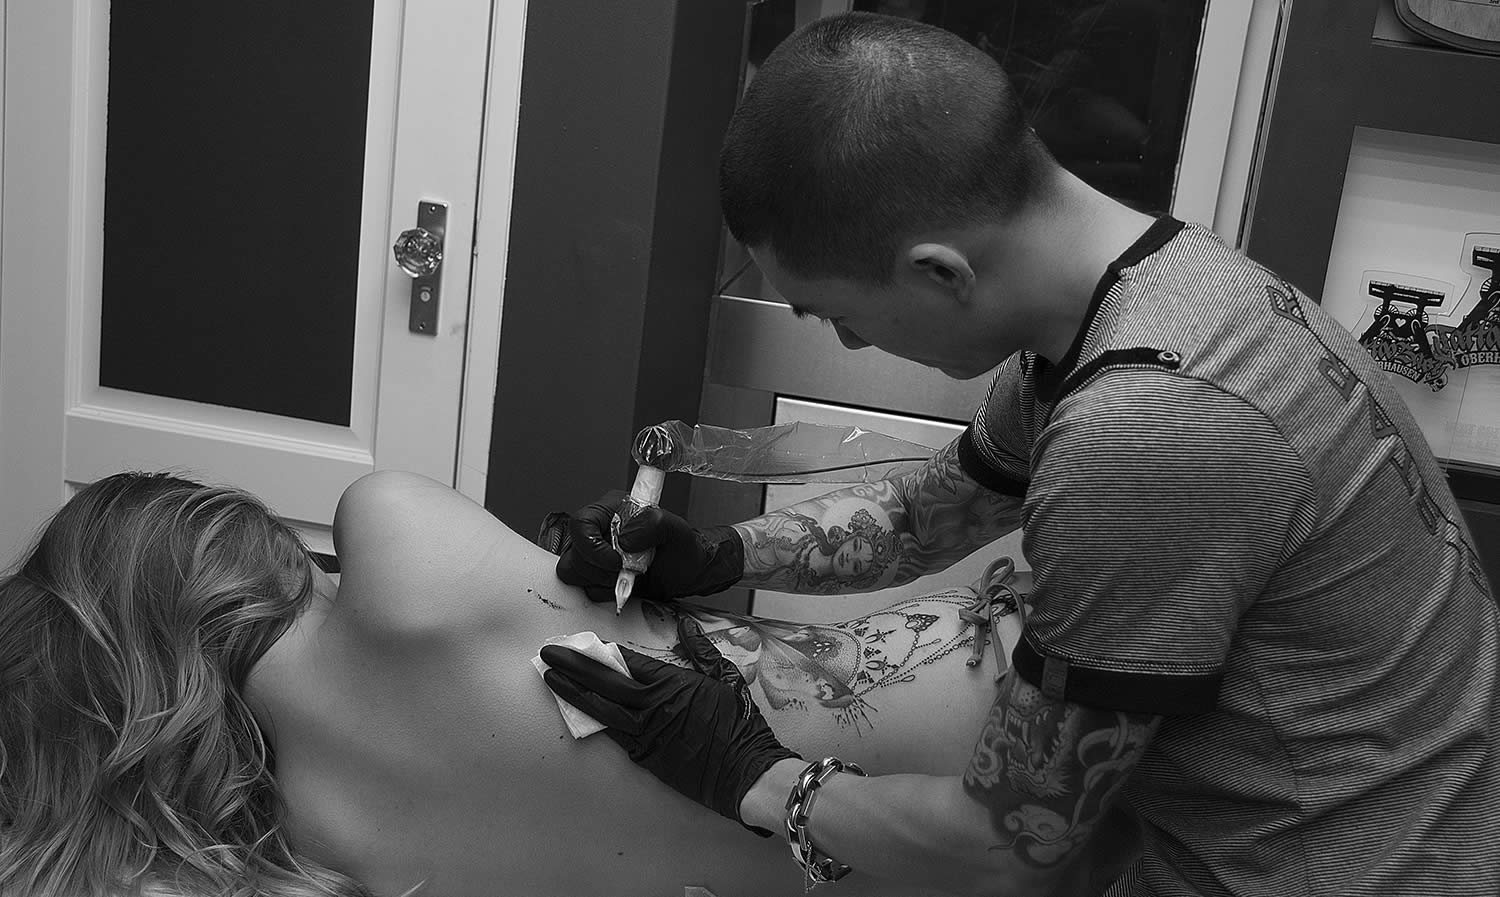 Jay freestyle freehanding a tattoo on client